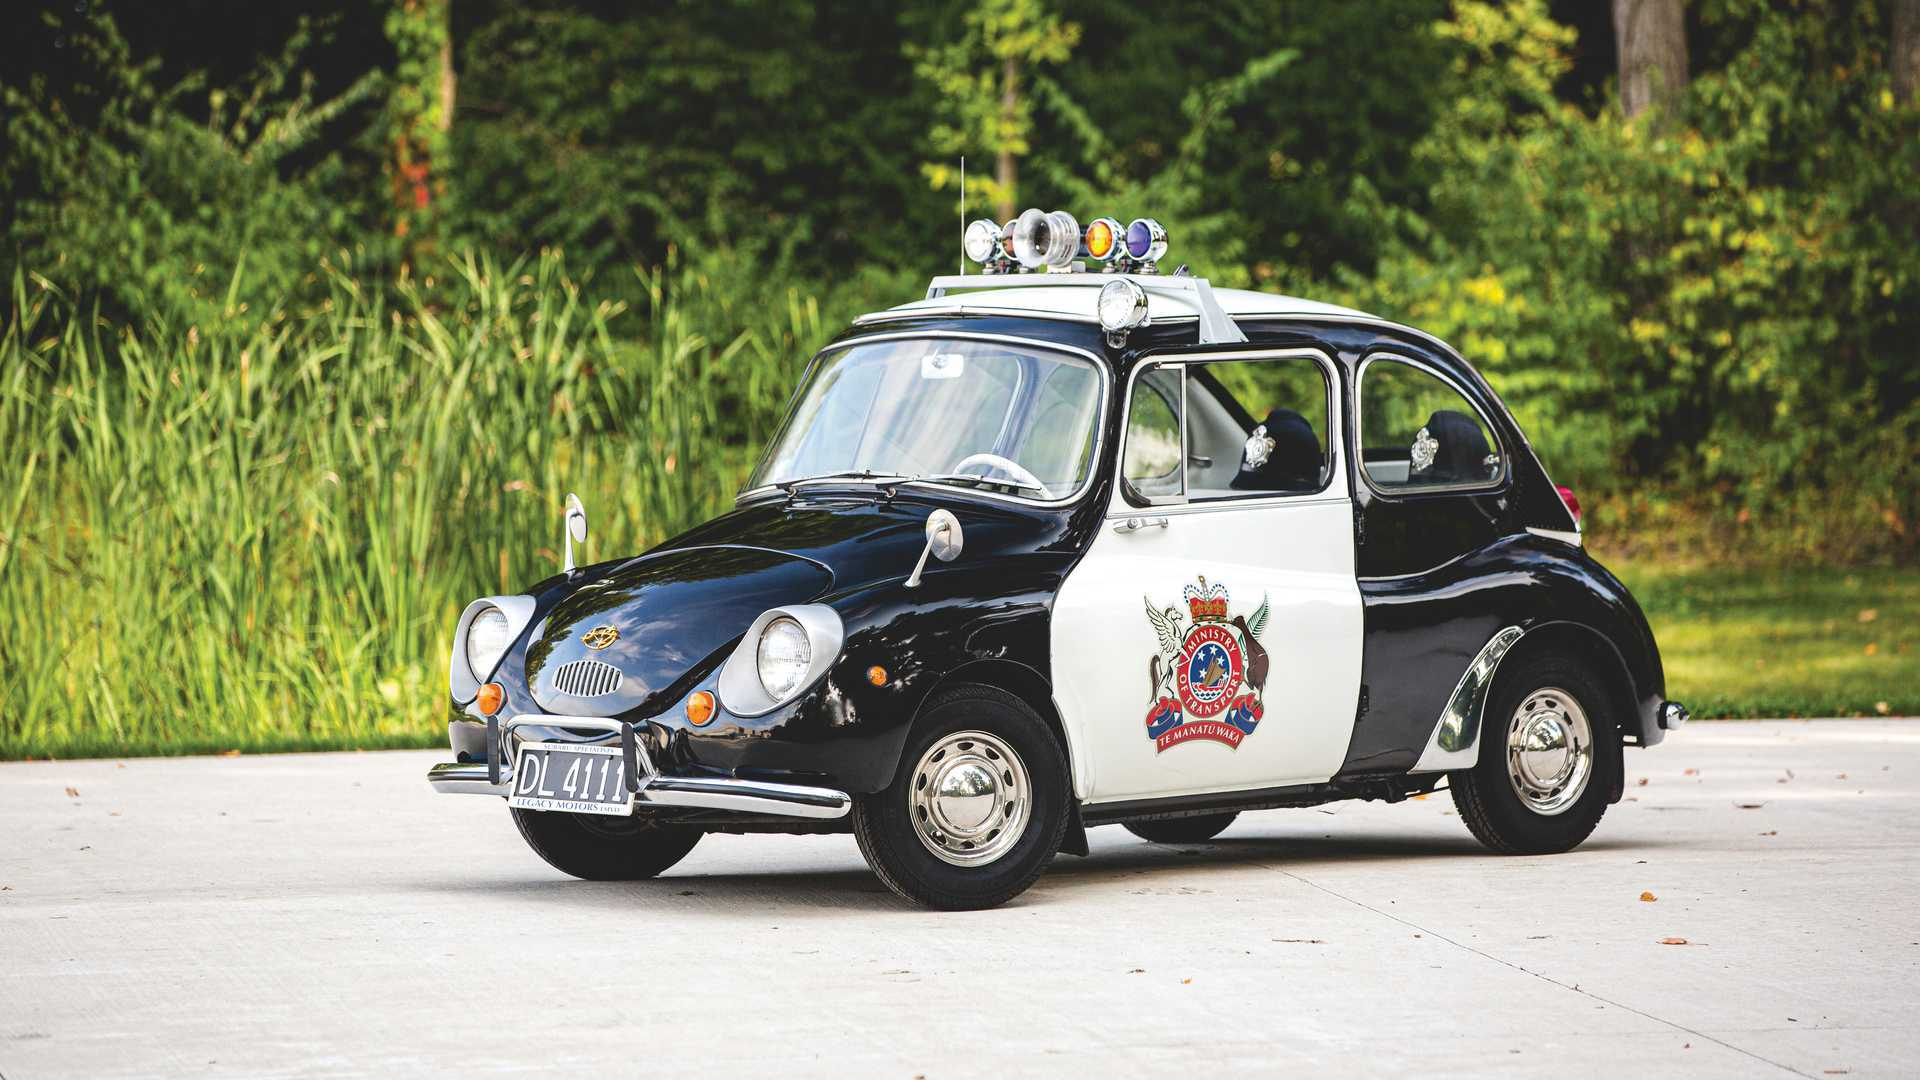 We are used to seeing well-equipped performance cars being used as police vehicles, but this was not always the case. Starting from 1970, this Subaru 360 has faithfully served the Police of New Zealand.